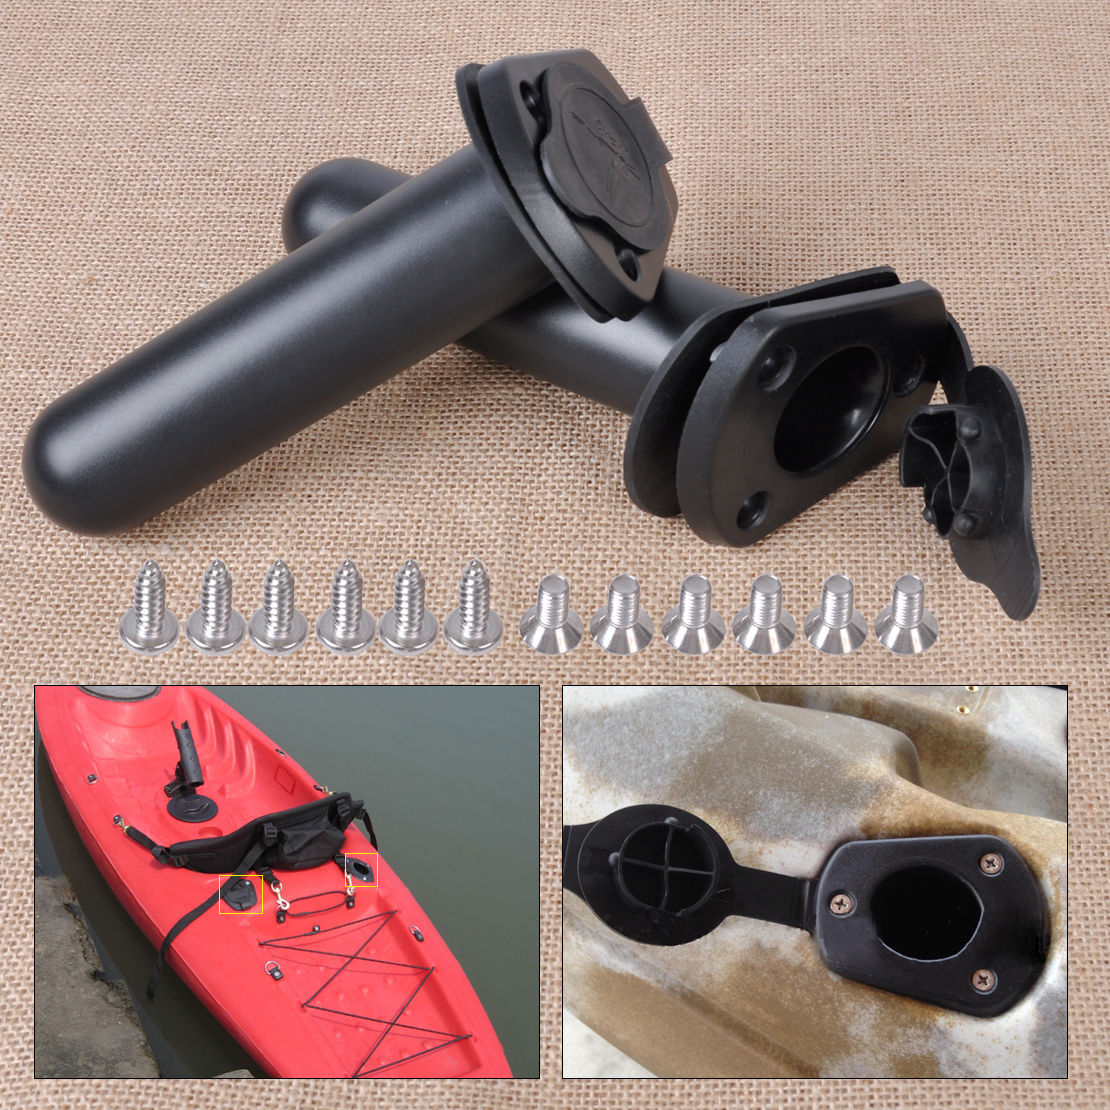 2Pcs Flush Mount Fishing Rod Pole Holder Stand Bracket Rest Replacement For Kayak Canoe Boat Accessories